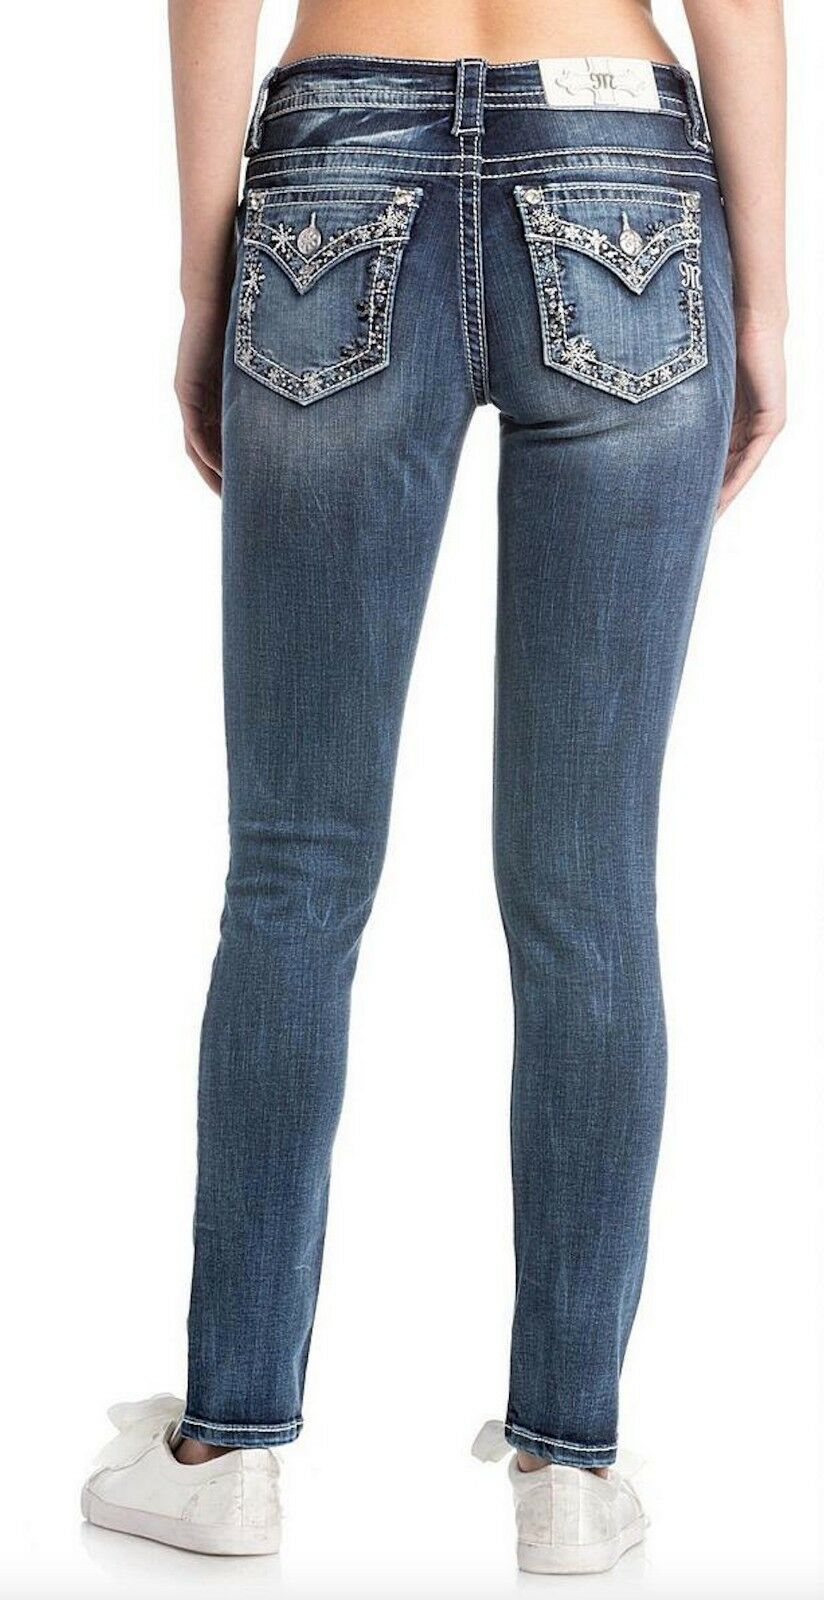 Miss Me Snowflake Border Medium Wash Skinny Cut Jeans M3288S w  Size 32 33 34